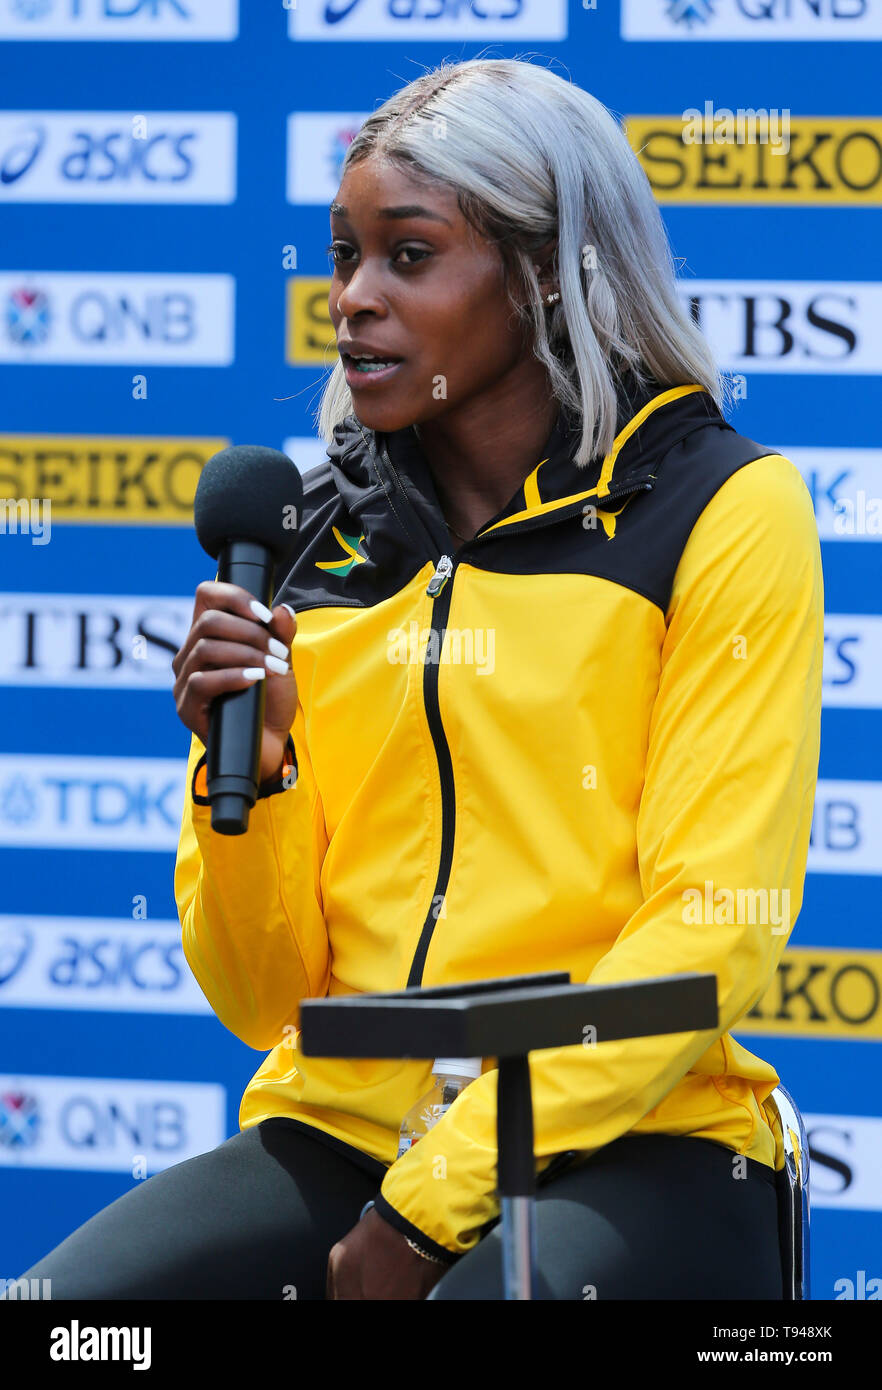 YOKOHAMA, JAPAN - MAY 10: Elaine Thompson of Jamaica during the official press conference of the 2019 IAAF World Relay Championships at the Nissan Stadium on May 10, 2019 in Yokohama, Japan. (Photo by Roger Sedres for the IAAF) - Stock Image